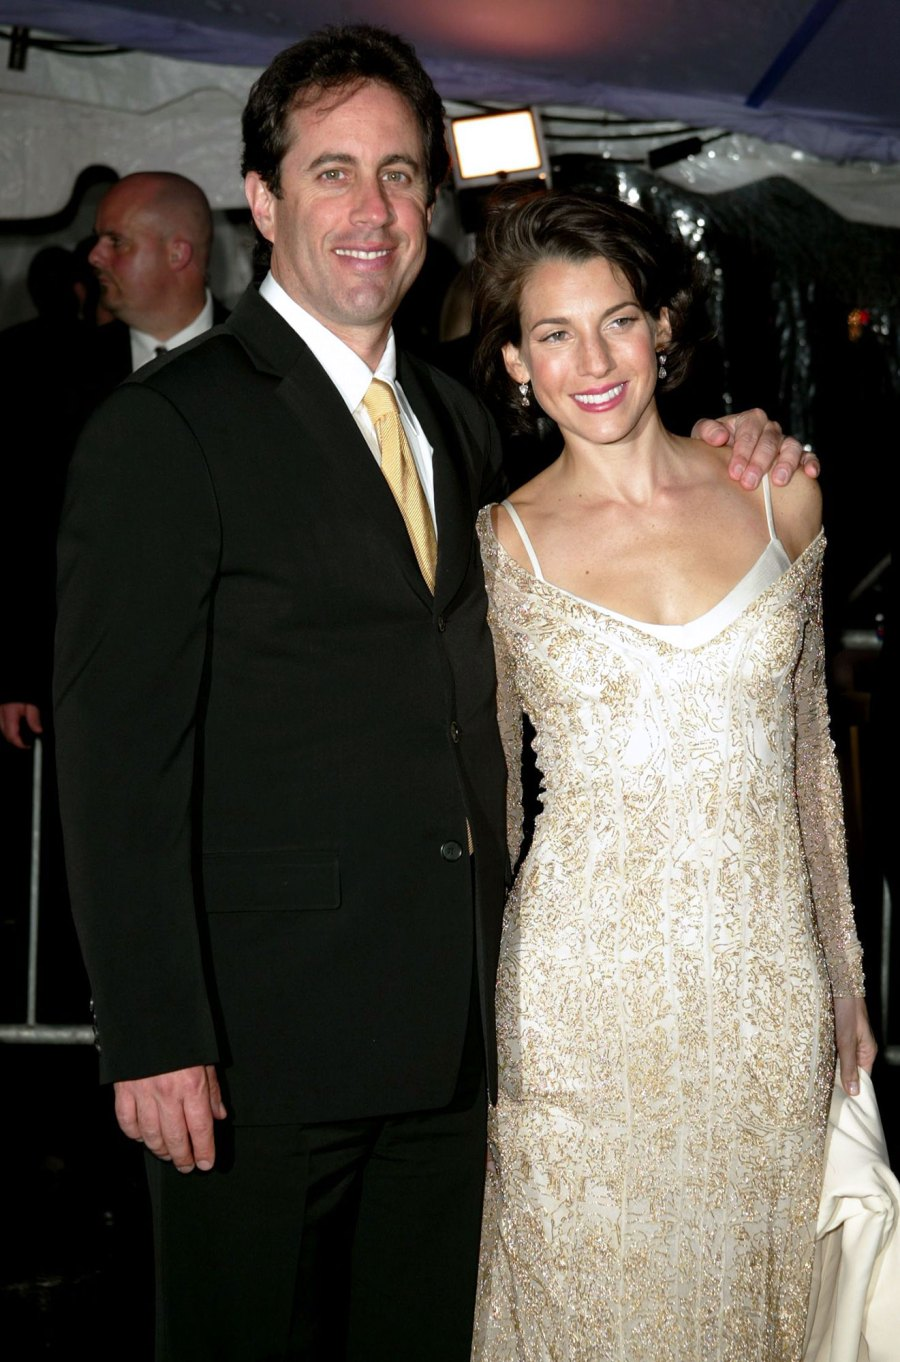 Jerry Seinfeld and Jessica Sklar Celebrities Who Fell in Love With Non-Famous People